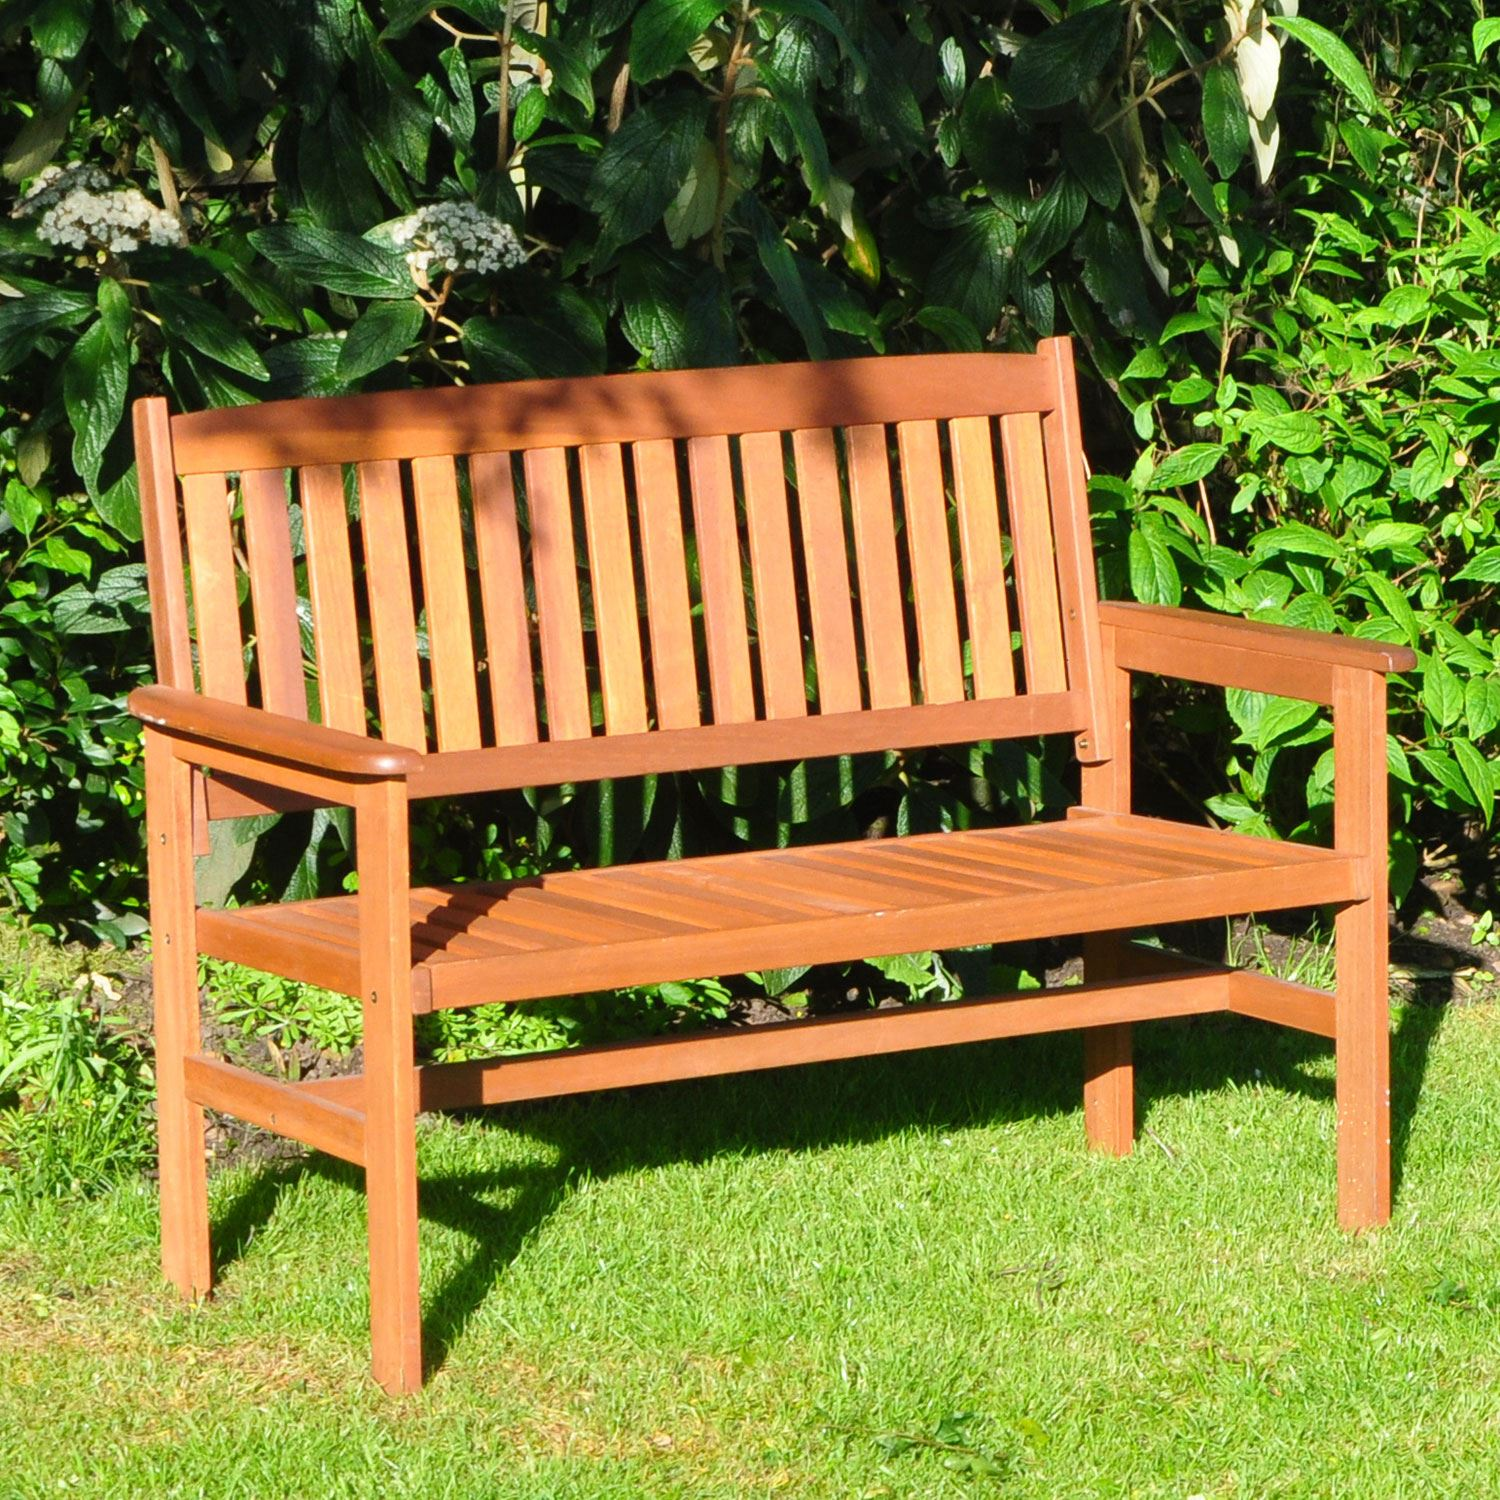 Garden-Bench-2-3-Seater-Wooden-Metal-Legs-Outdoor-Home-Patio-Furniture-Lattice thumbnail 6